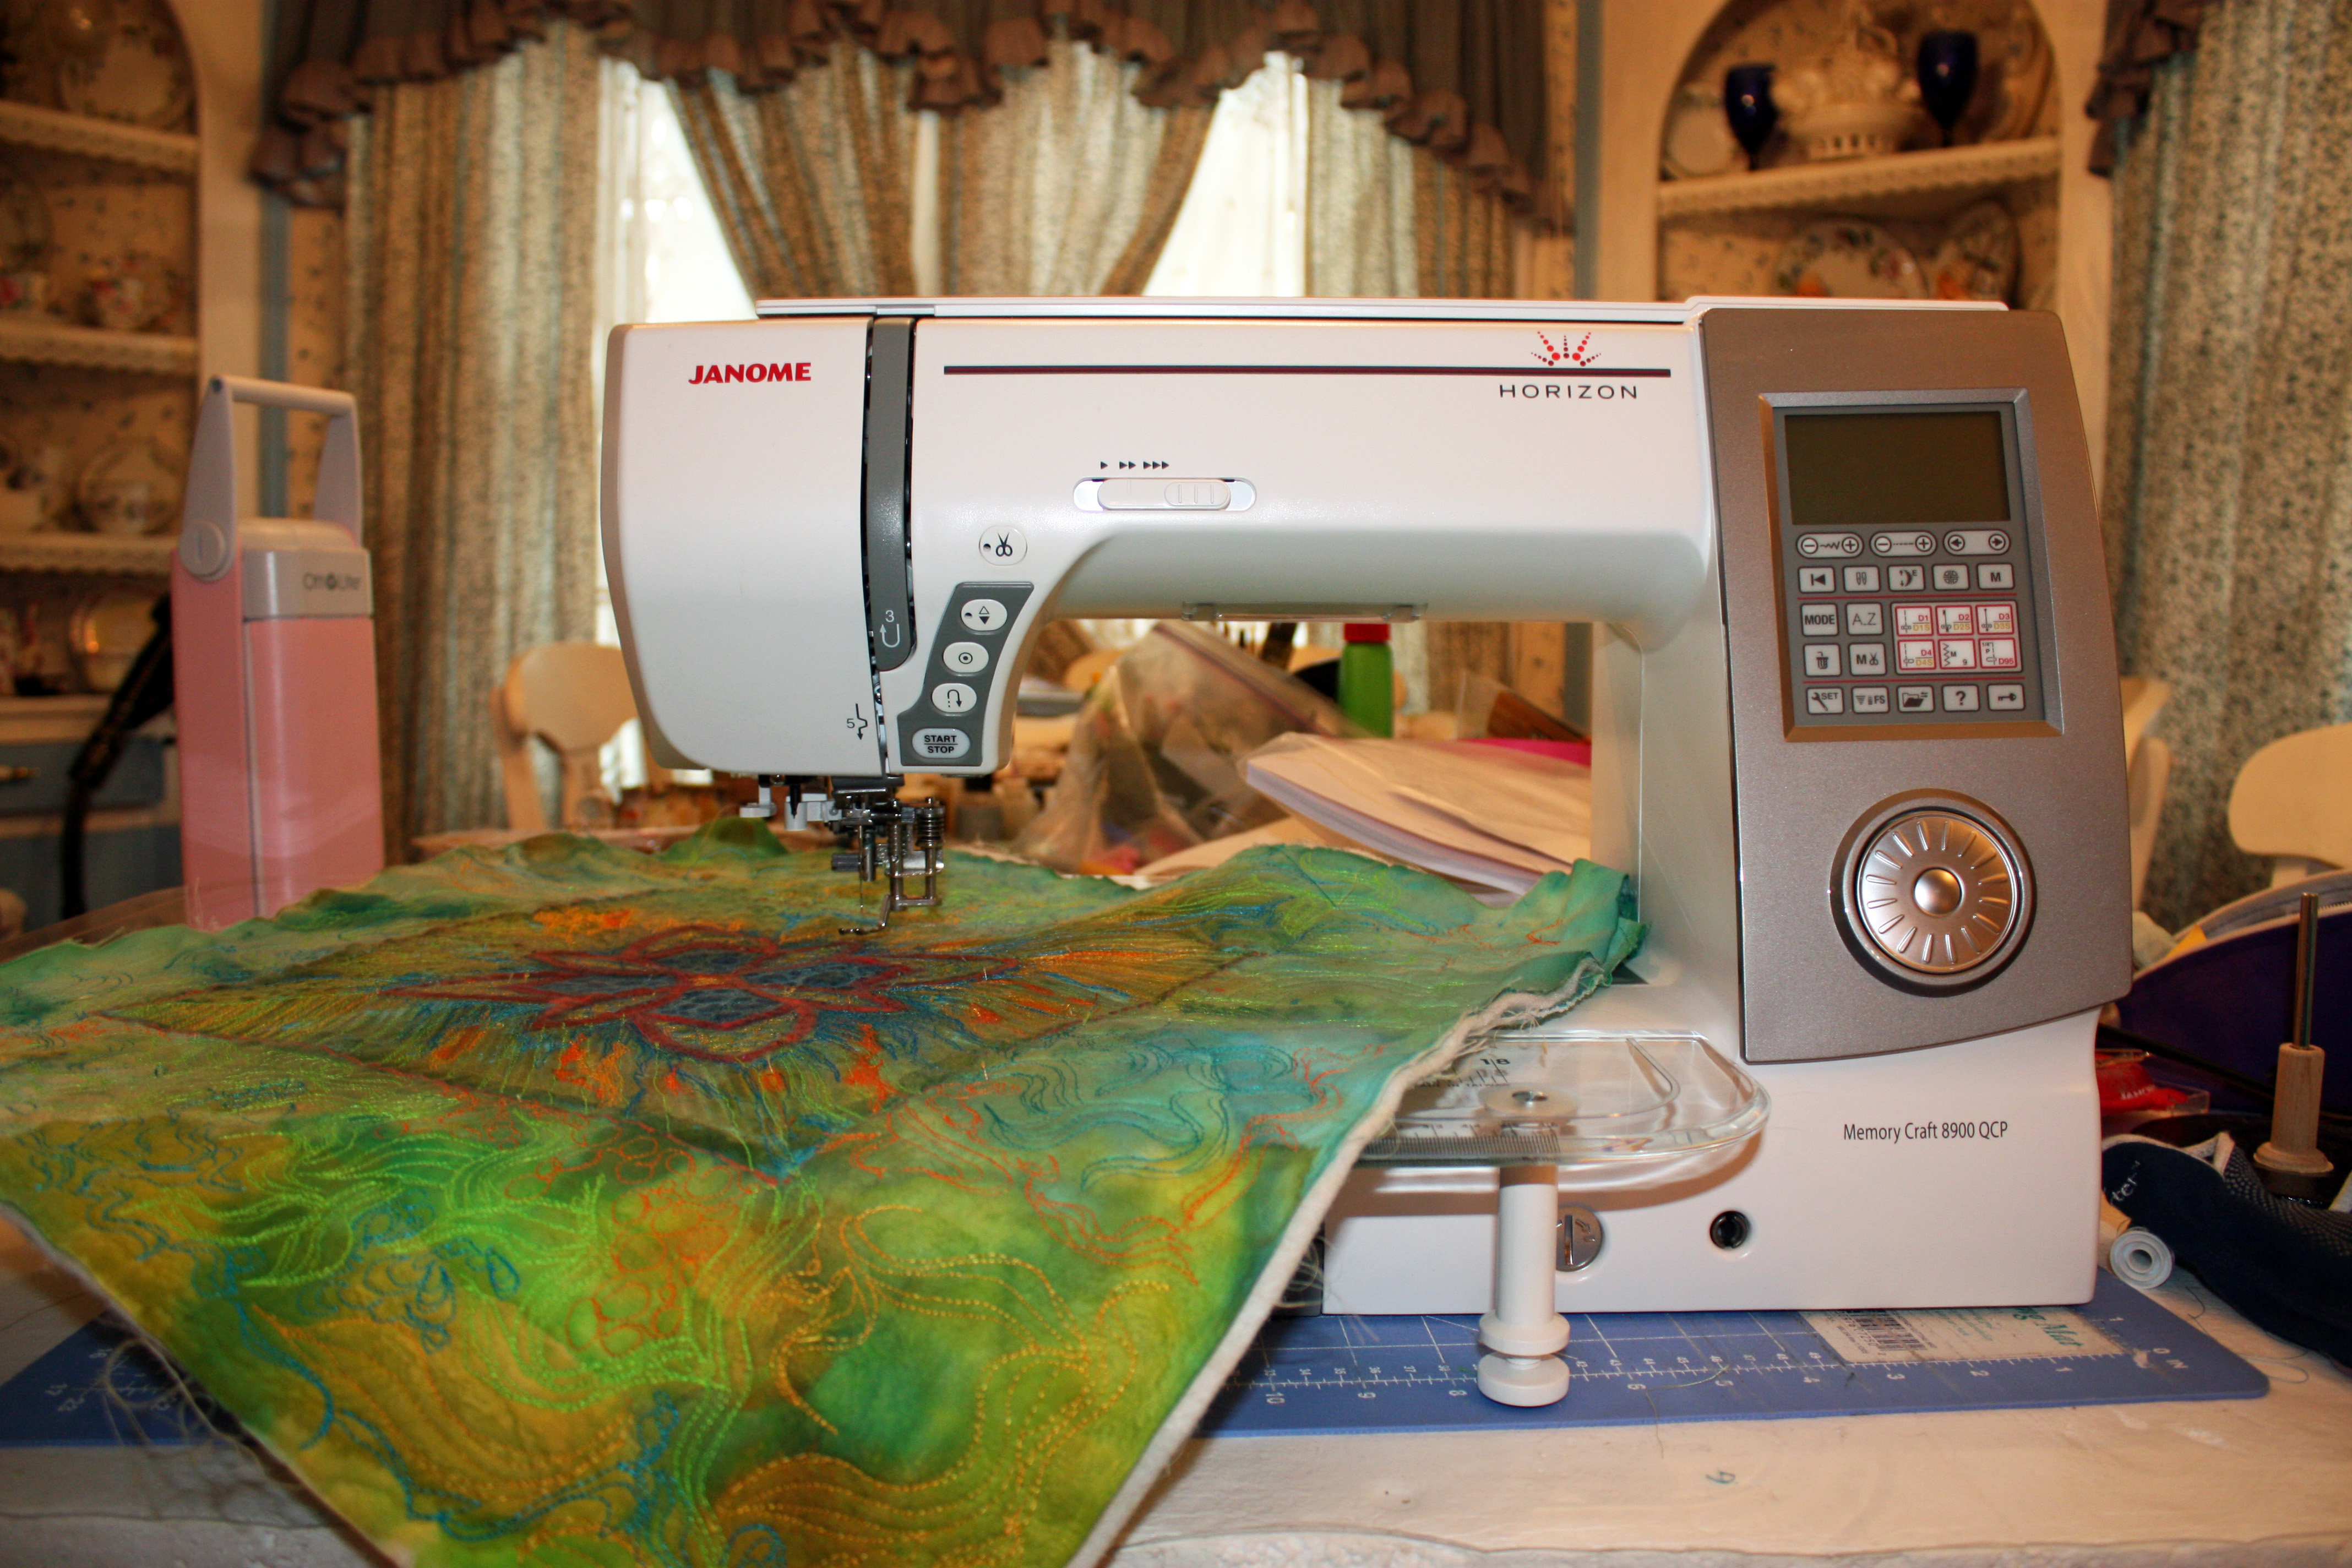 Janome horizon memory craft 8900 - How About That New Janome